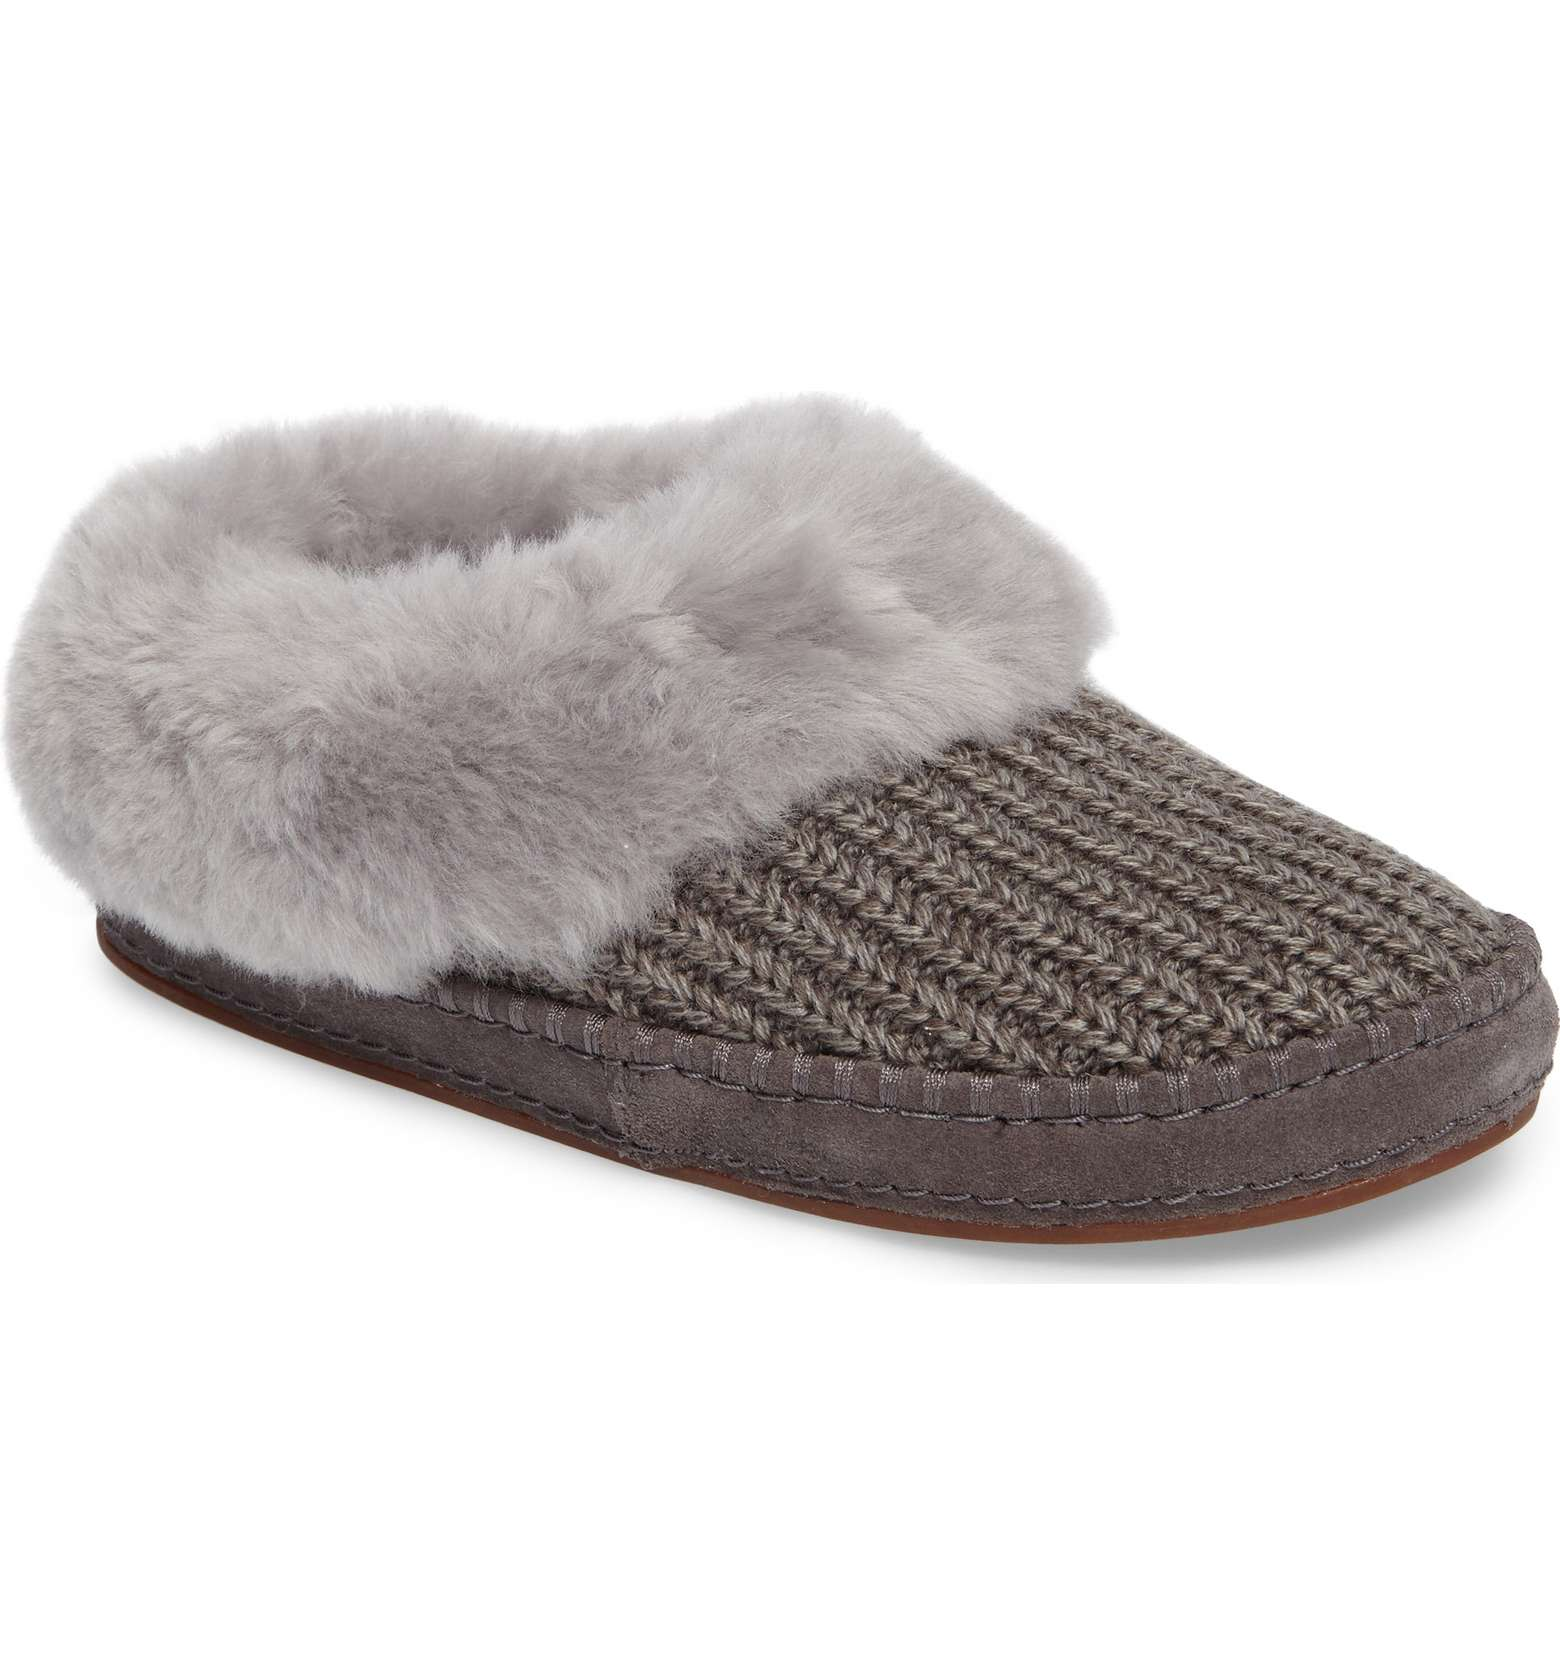 A Good Pair of Slippers - I had my last pair of Ugg slippers for 7 years. They were so sad looking but still did the trick! I just got these for Christmas and love the knit detail. Plus they are on sale!